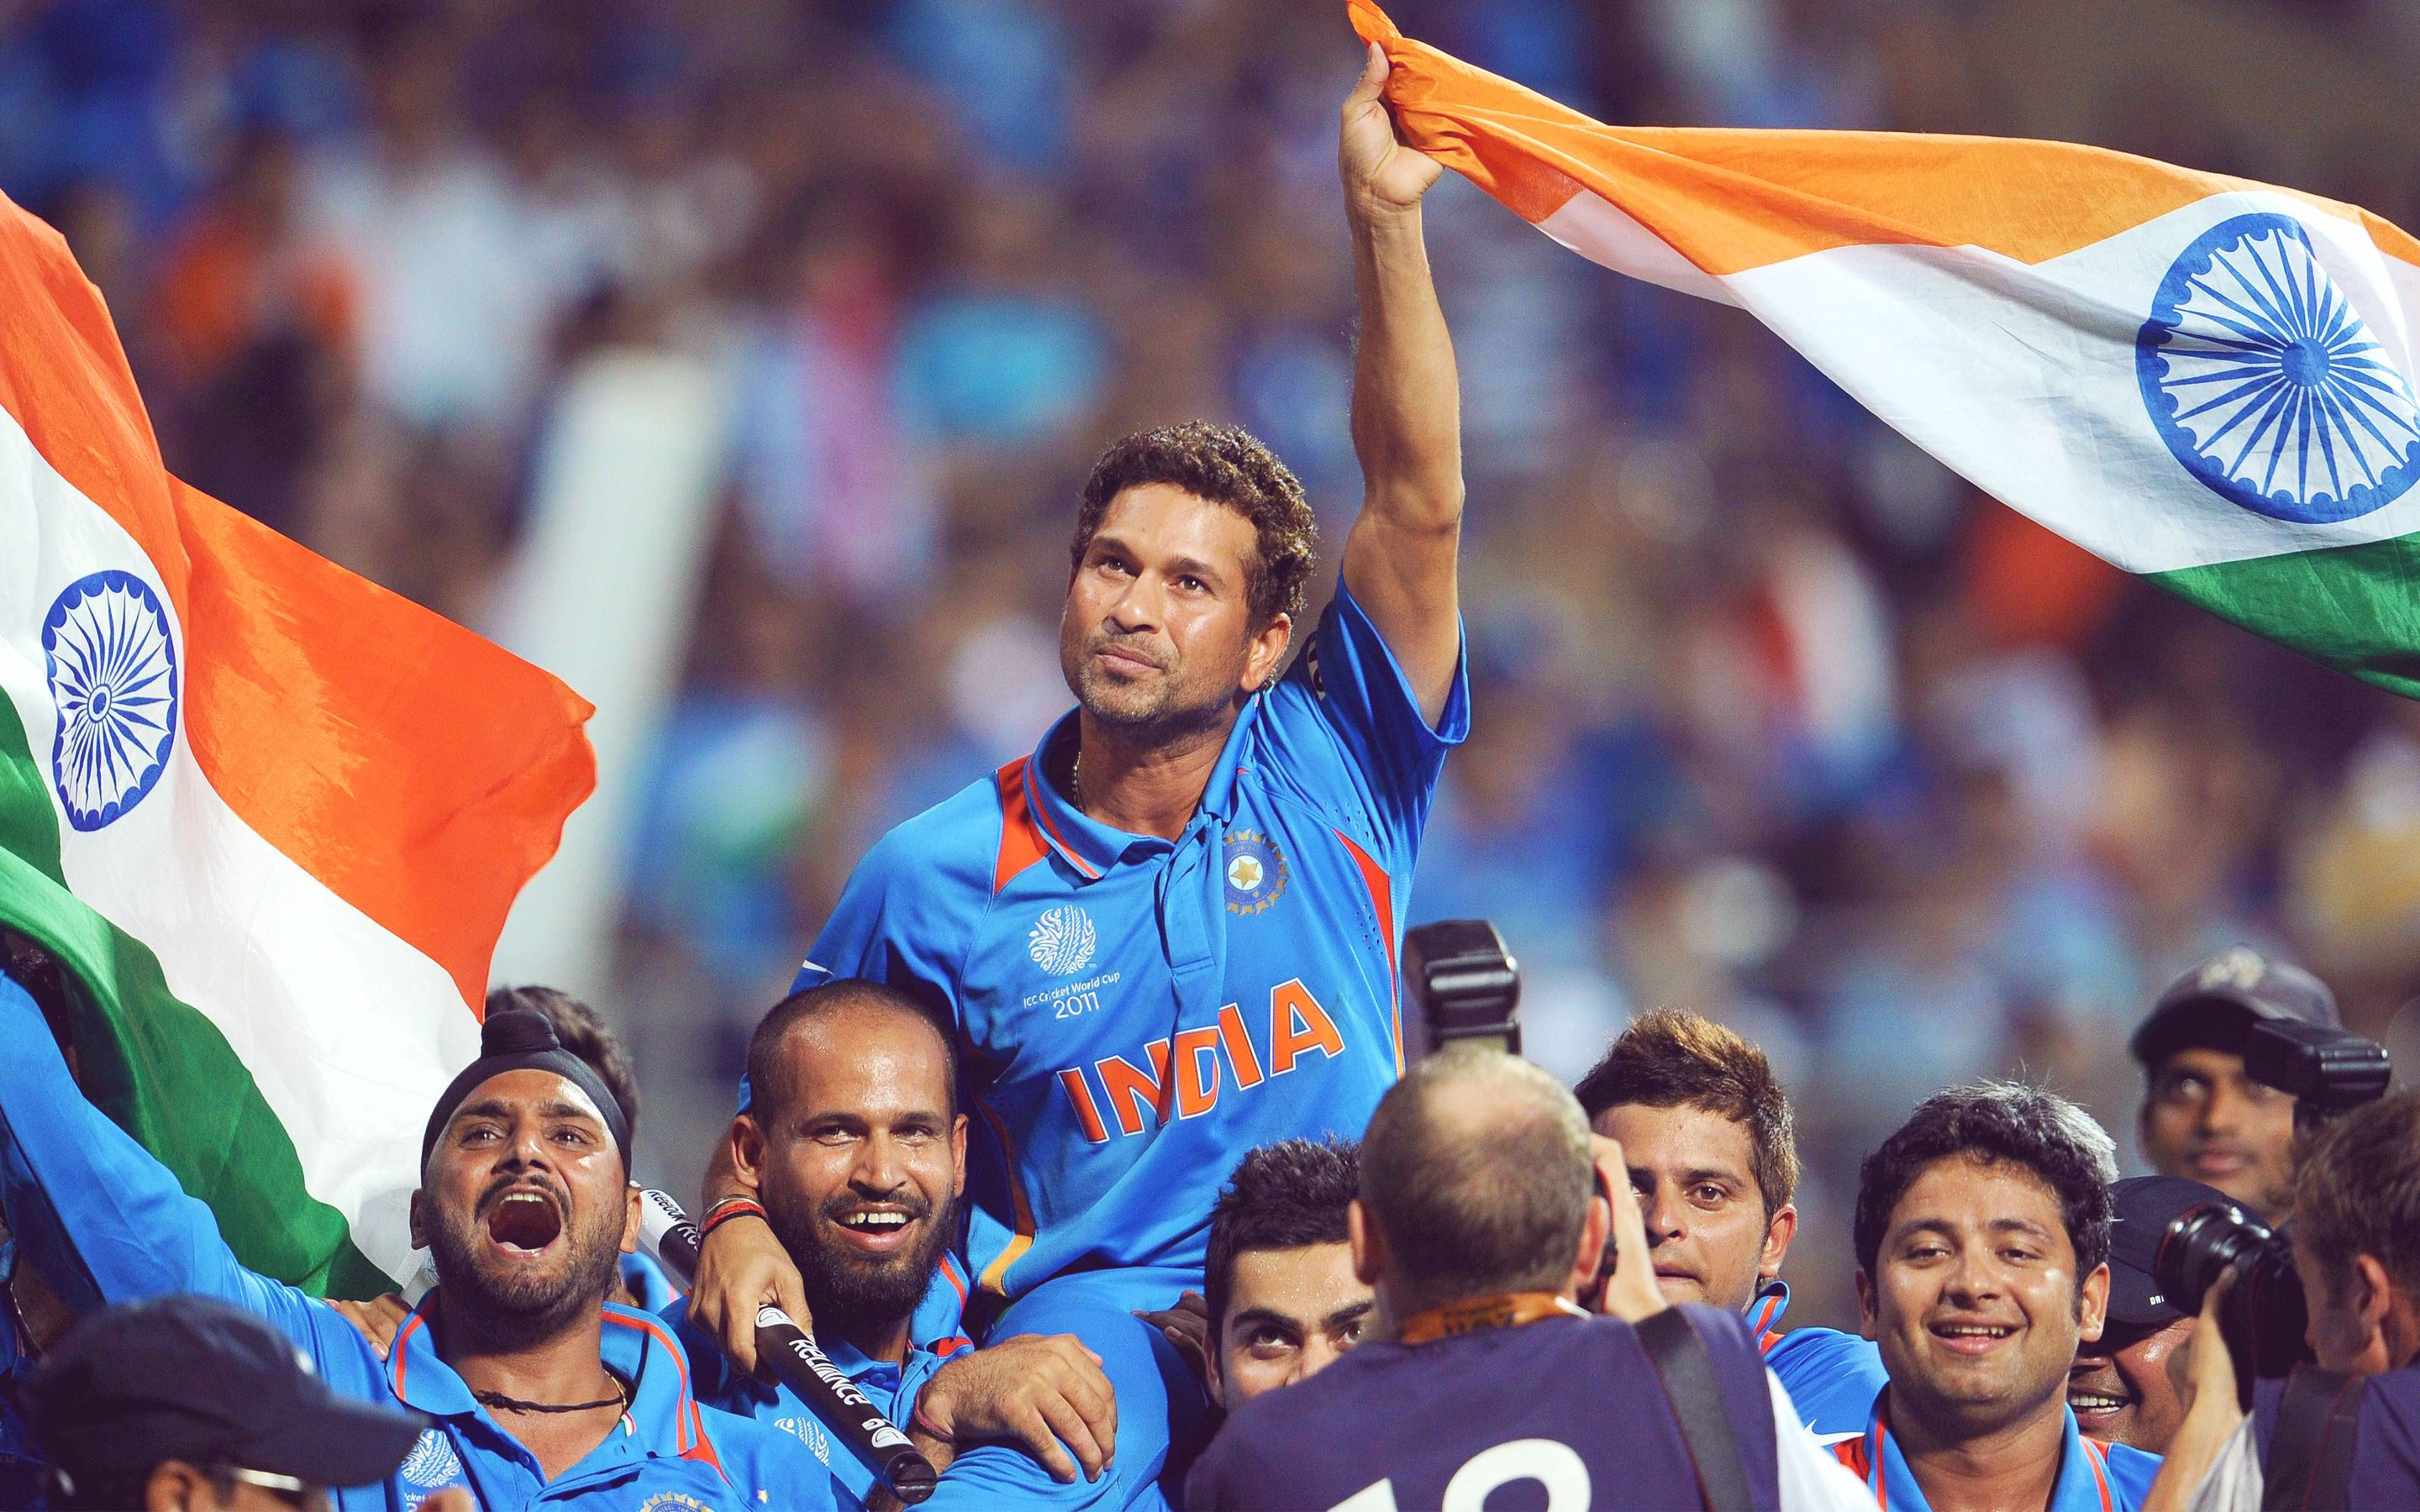 Sachin Tendulkar God Of Cricket Http Www Pixel4k Com Sachin Tendulkar God Of Cricket 6734 Html Braz 2011 Cricket World Cup Sachin Tendulkar Cricket World Cup